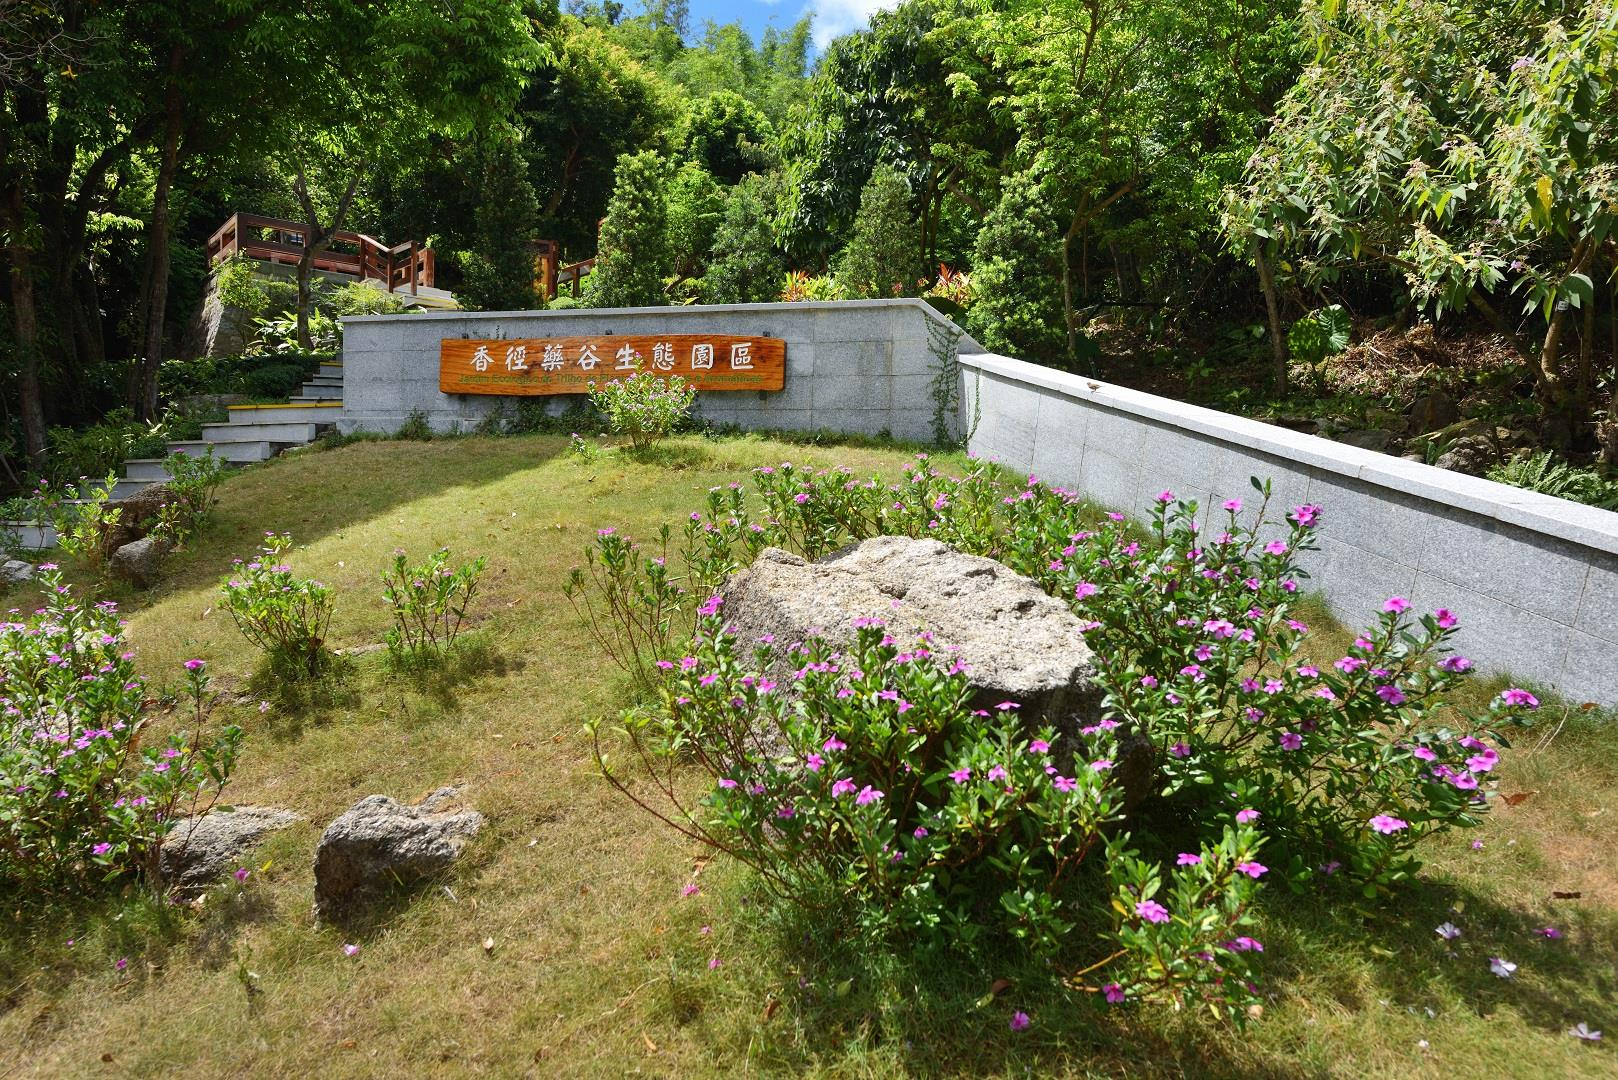 Ecological Trail Garden of Medicinal and Aromatic Plants and South China Medicinal Plants Garden